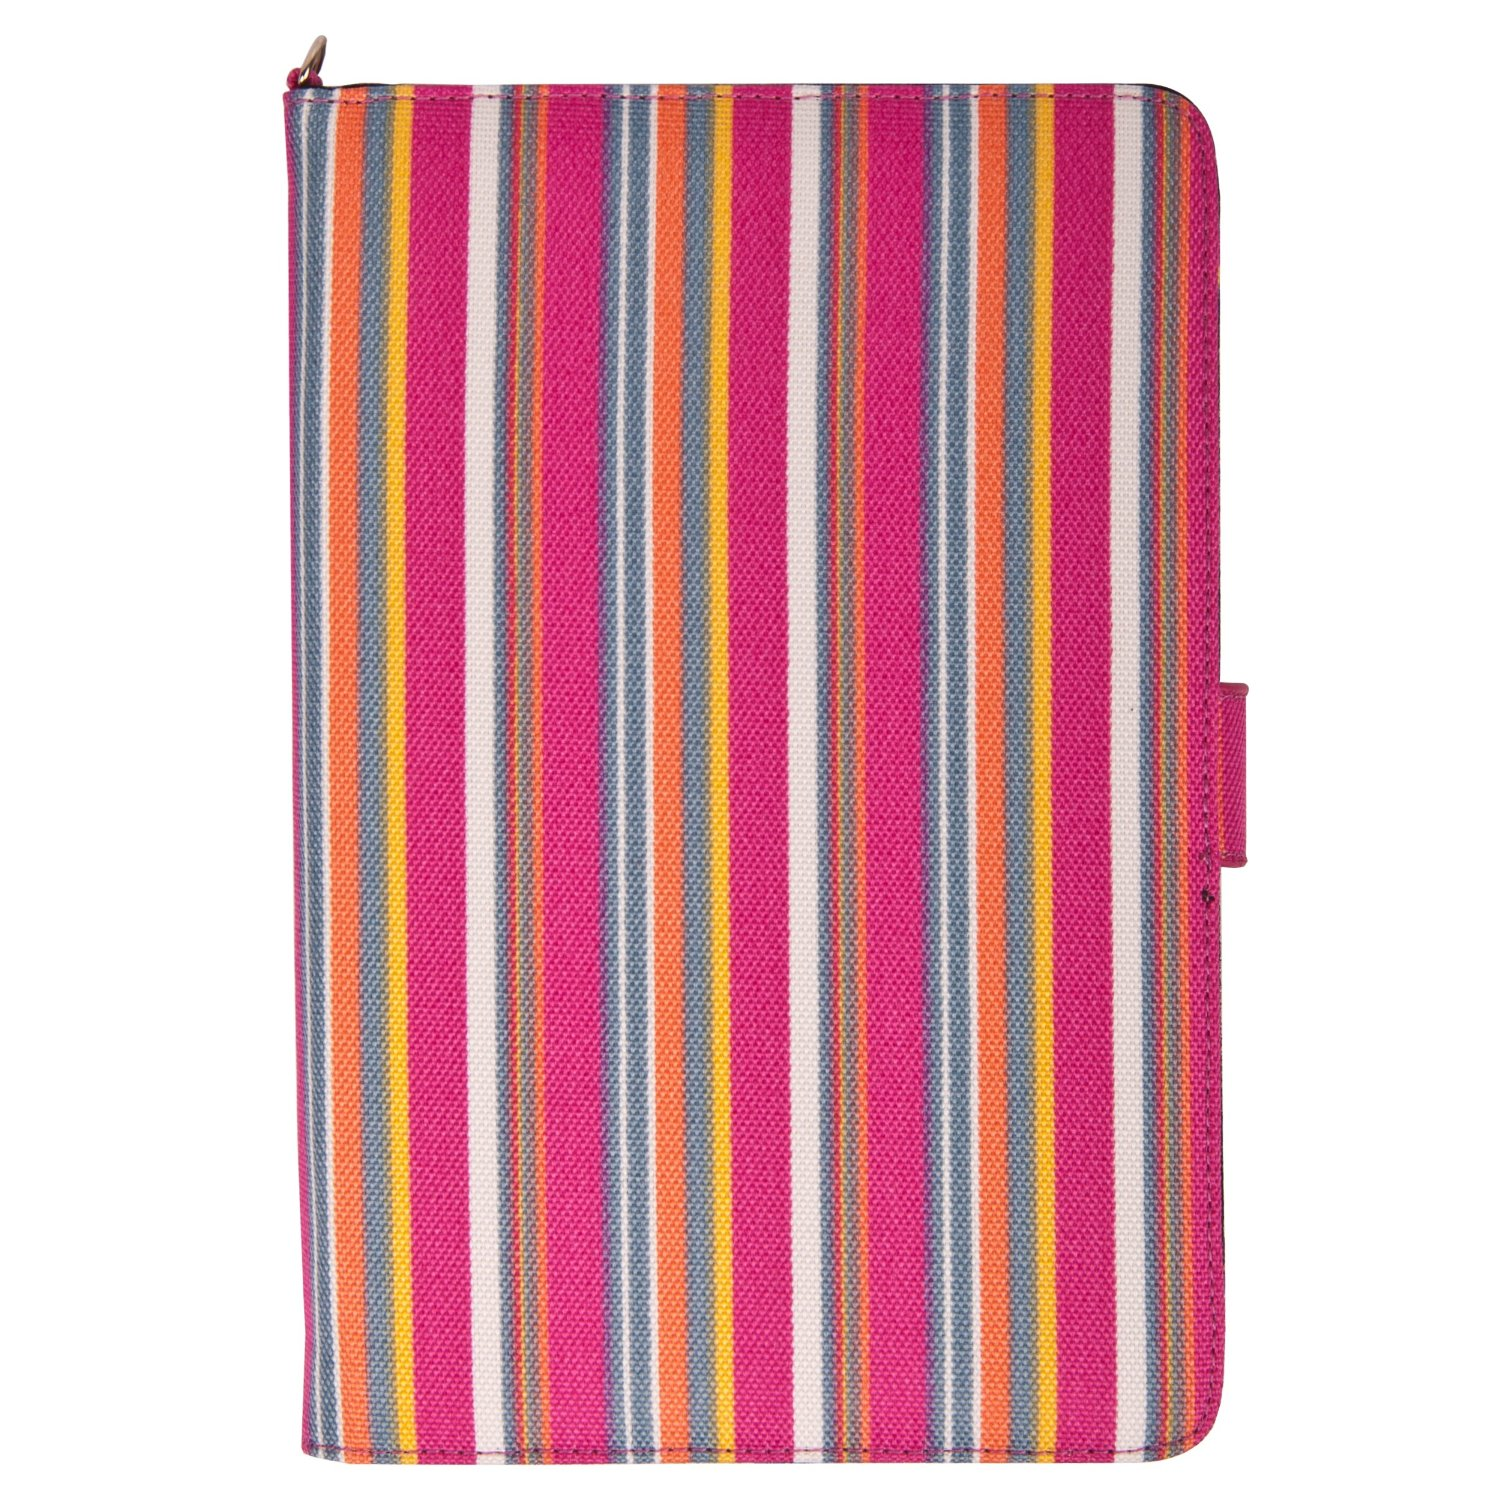 Candy Striped Case, Hard Cover Case, Dauphine Candy-Striped Folio, nexus 7 cases, nexus 7 Dauphine Candy-Striped Folio